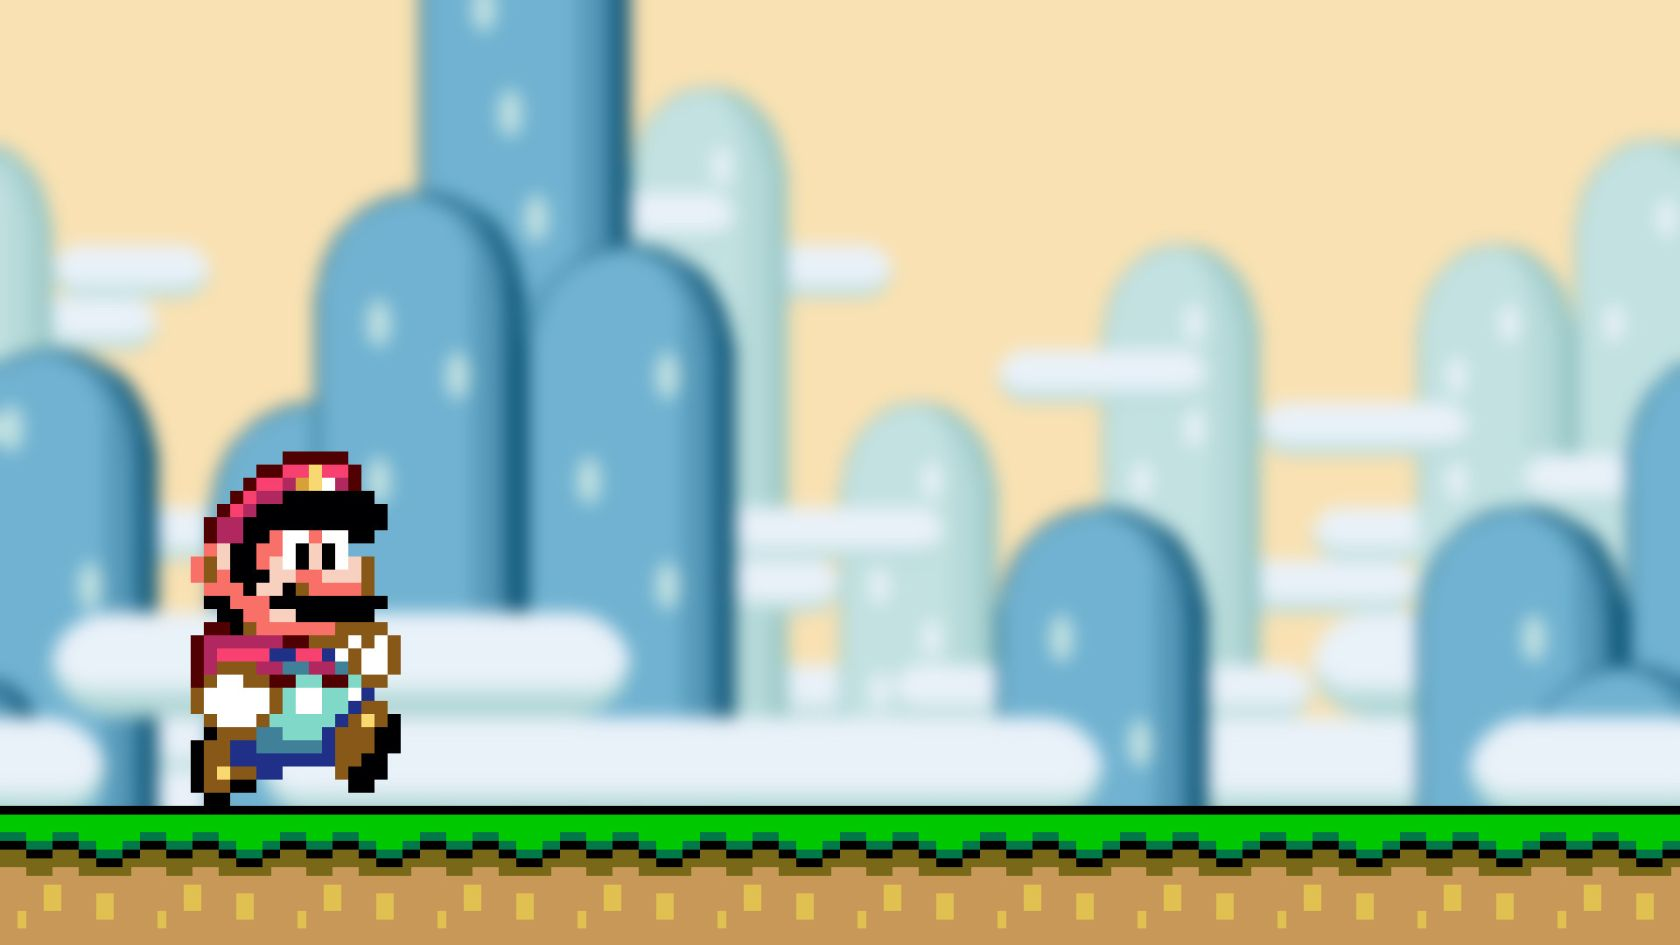 16 Bit Mario Wallpapers Wallpapers Pictures Piccit 1680x945